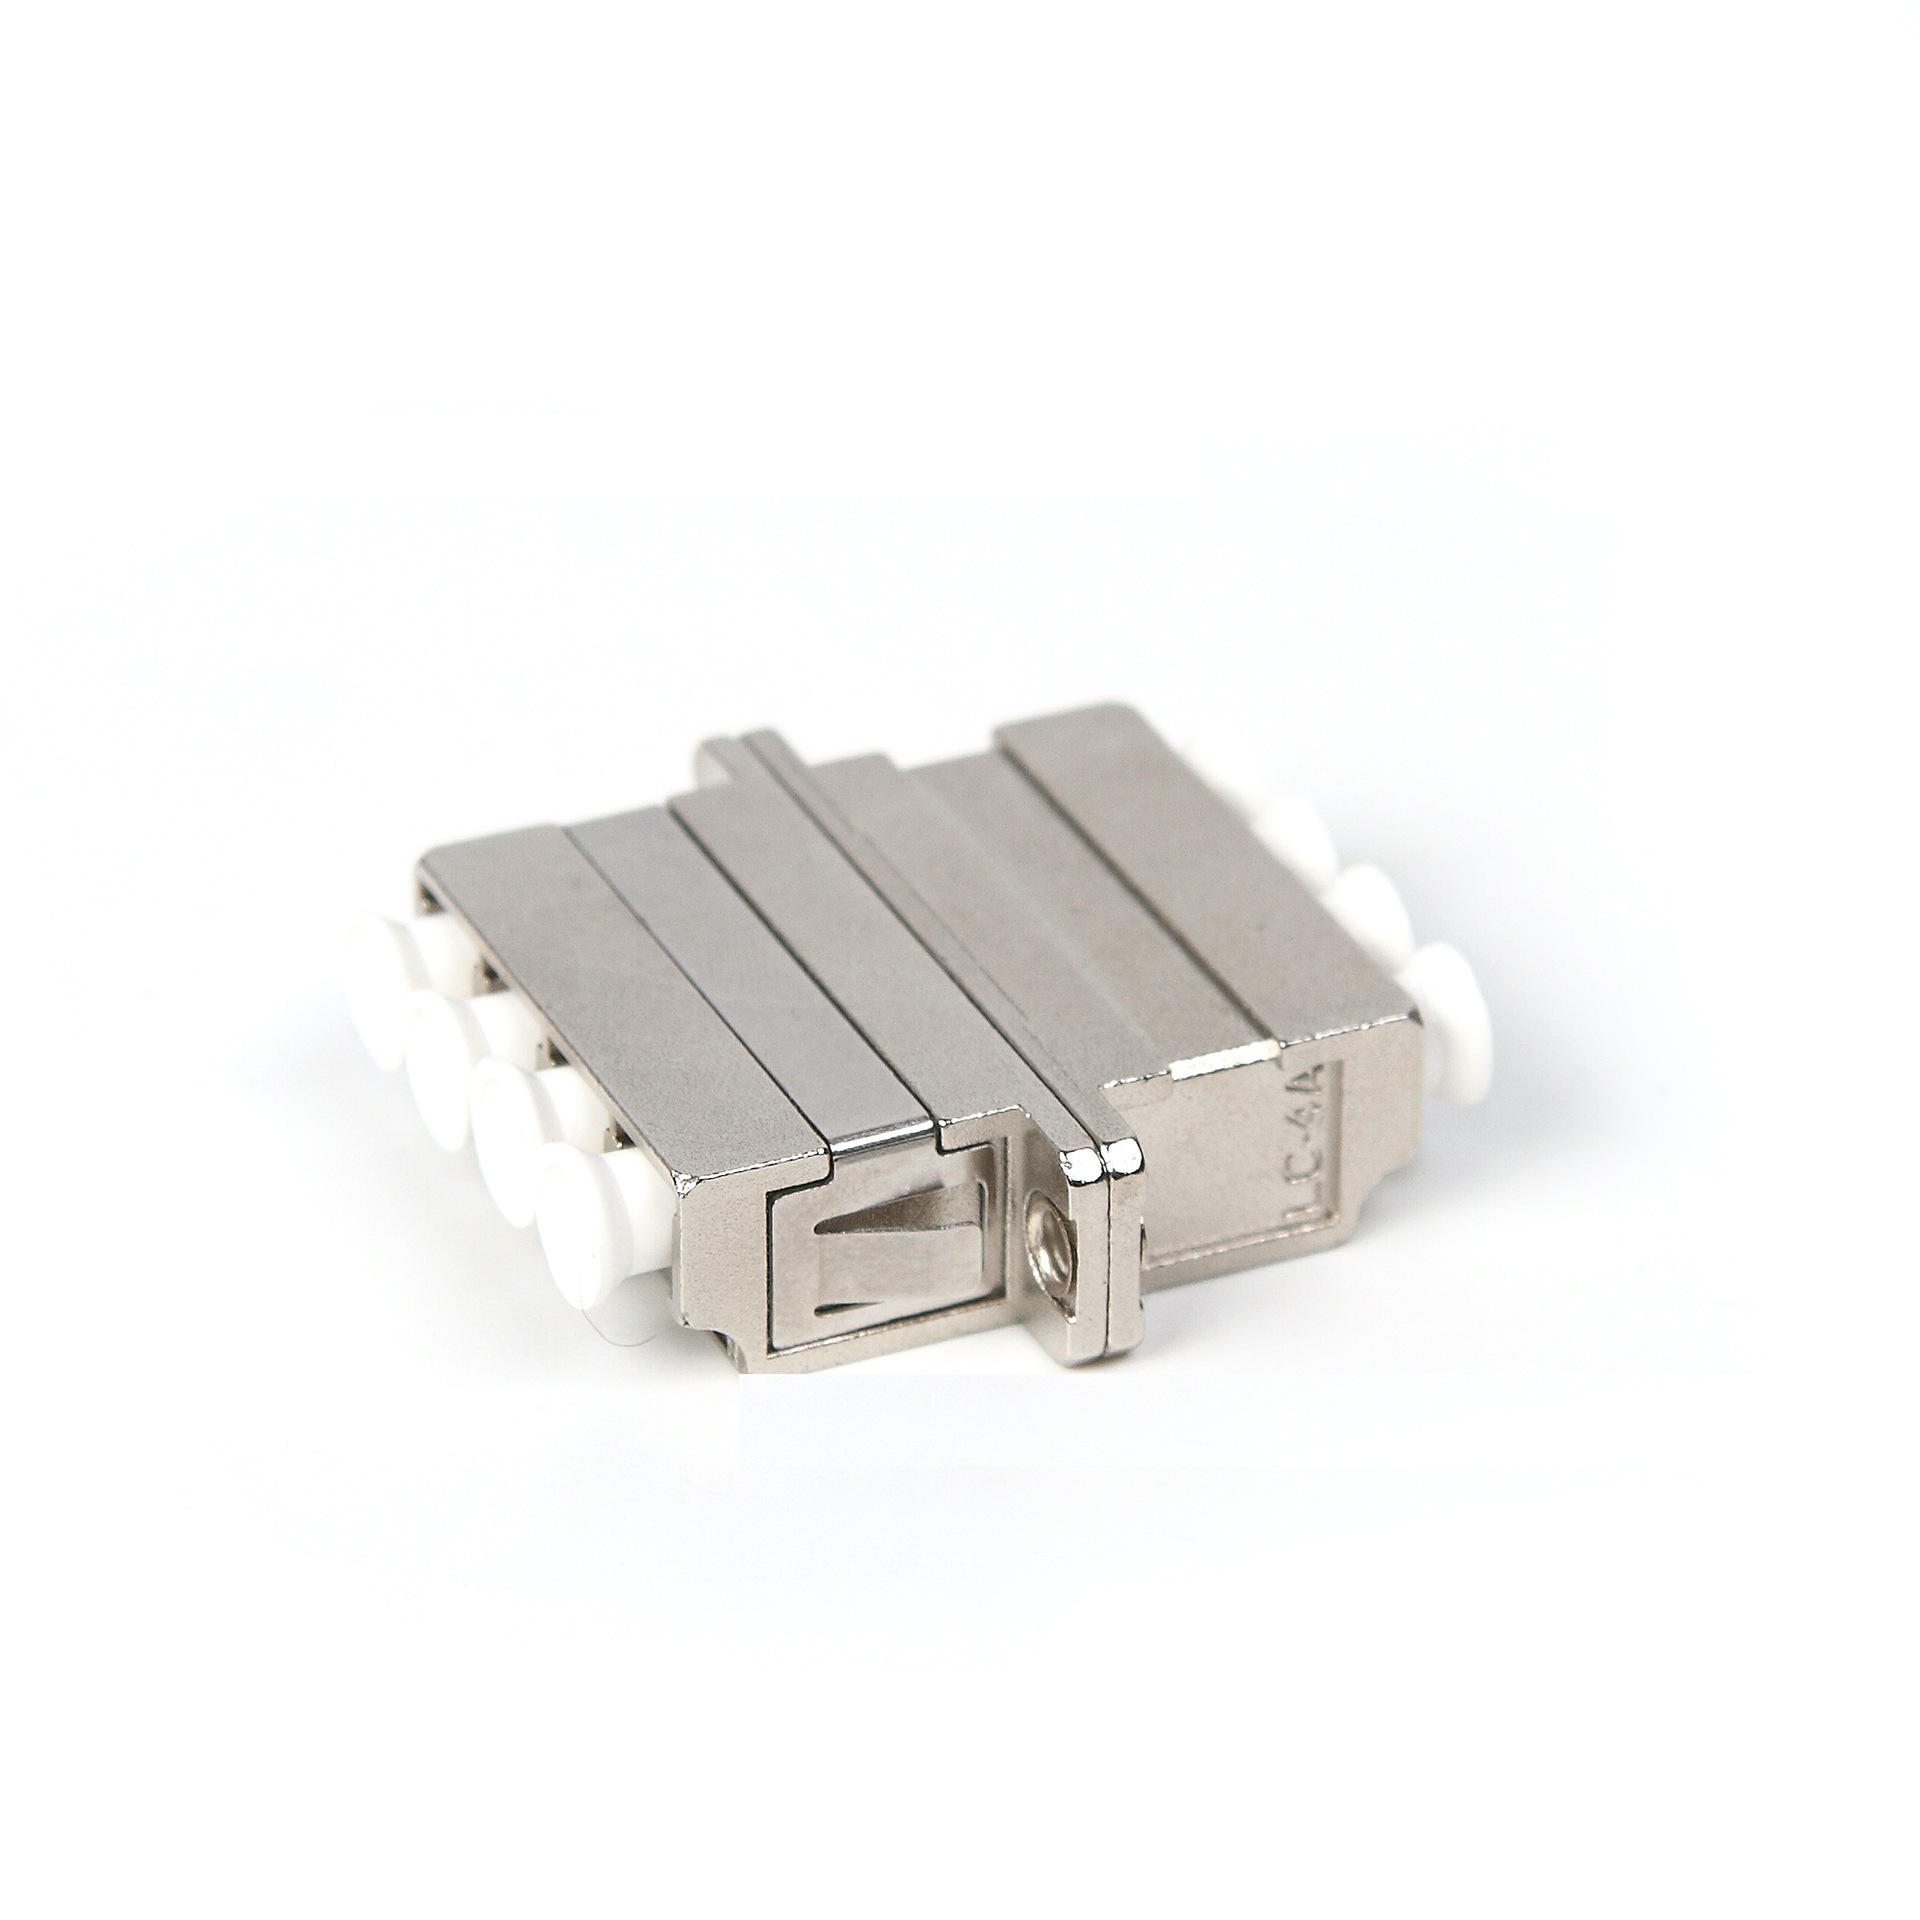 LC Quadruplex Metal Body Fiber Optic Adapter